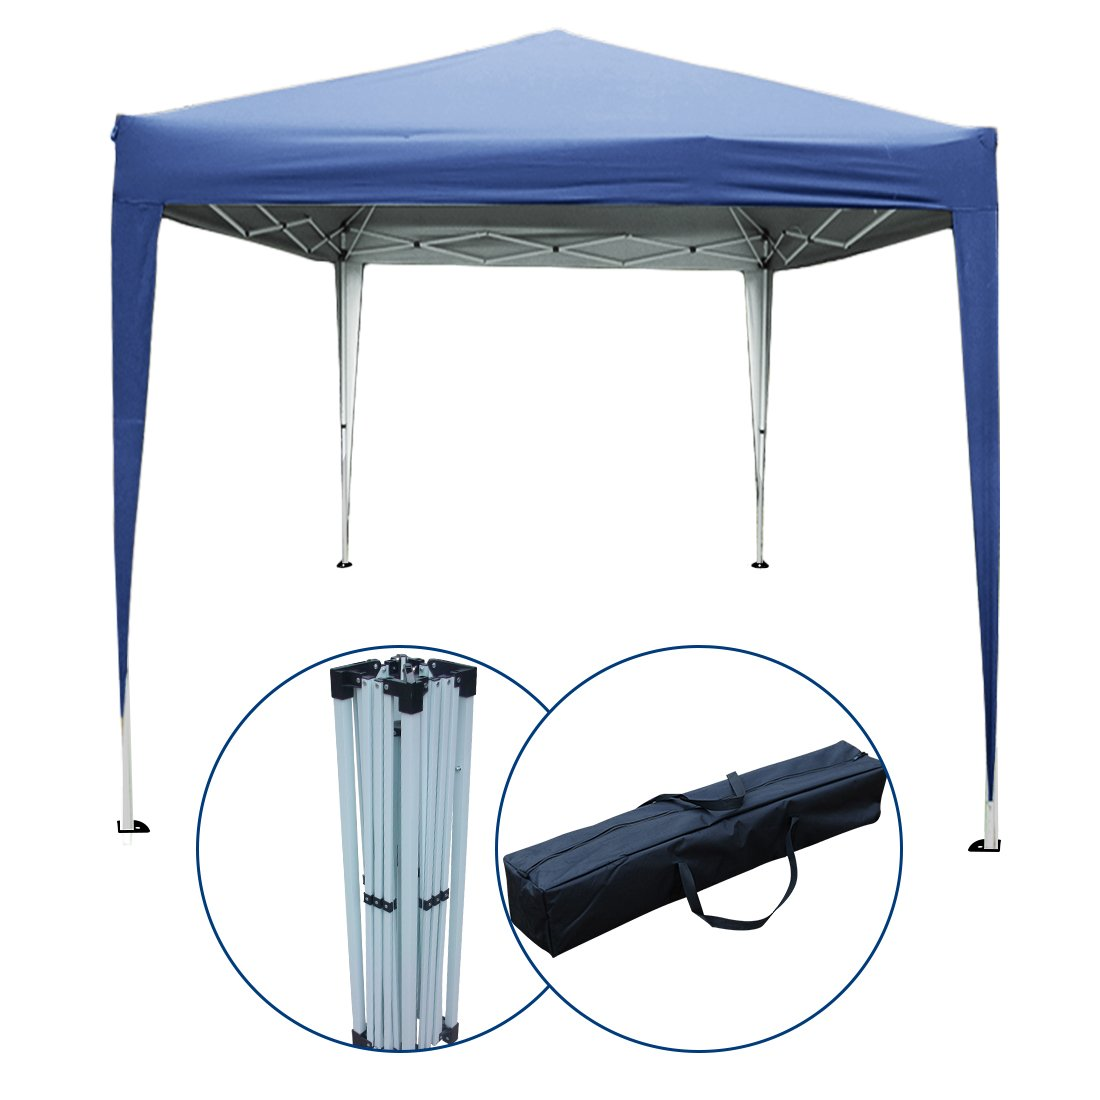 PeakTop 10 x10 Feet EZ Pop Up Canopy Tent Gazebo Party Tent Instant Commercial Tent Beach Sun Shade With Carry Bag 100% Waterproof-5 Colors (Navy Blue)